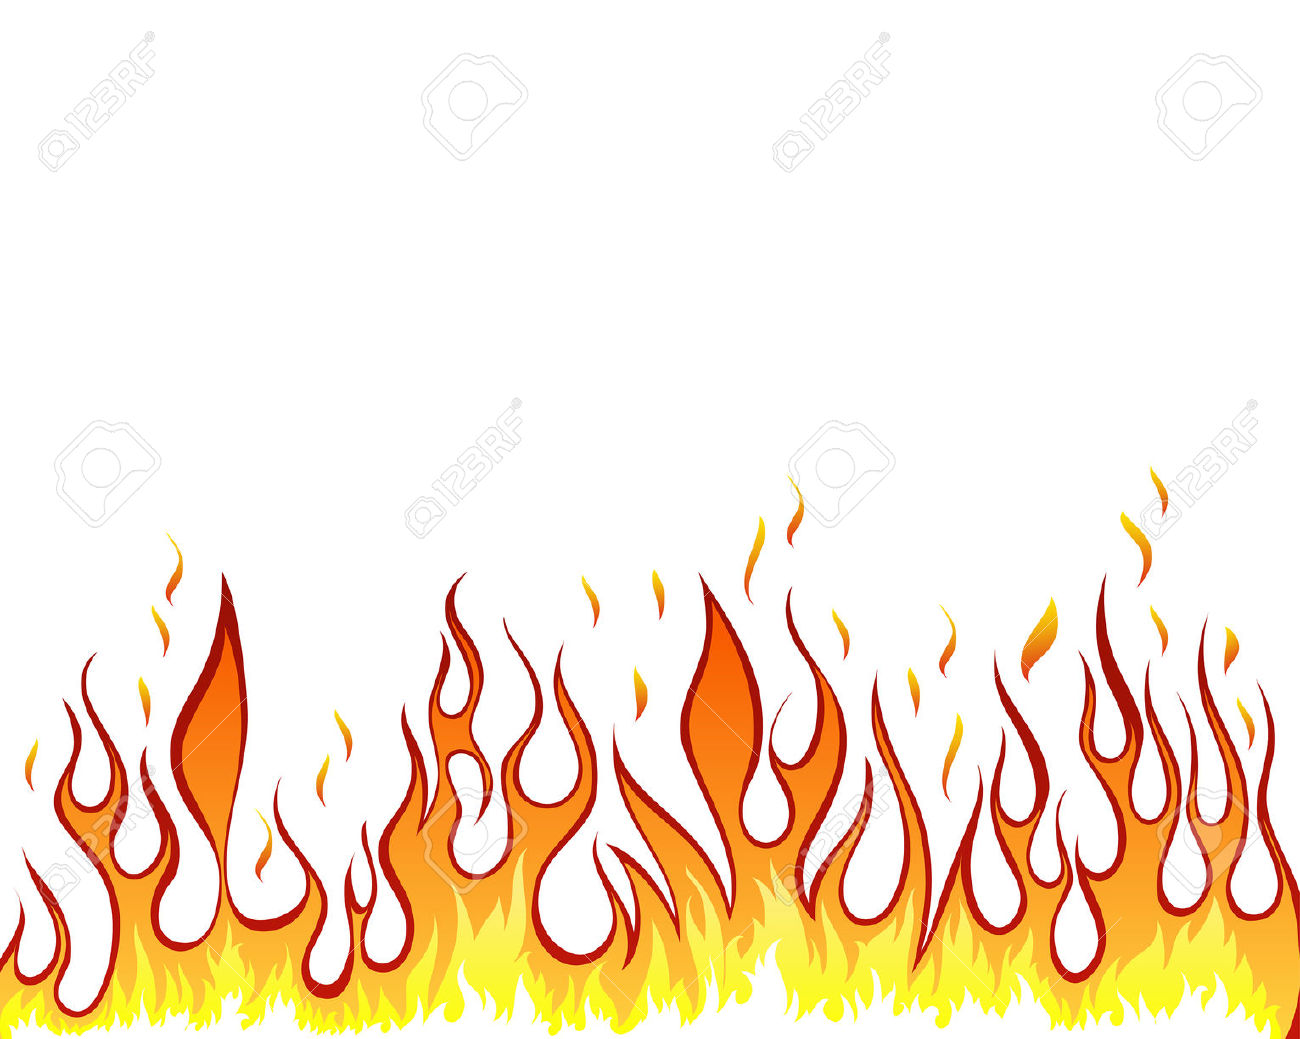 Drawn fireplace Free Use Vector Inferno Vector